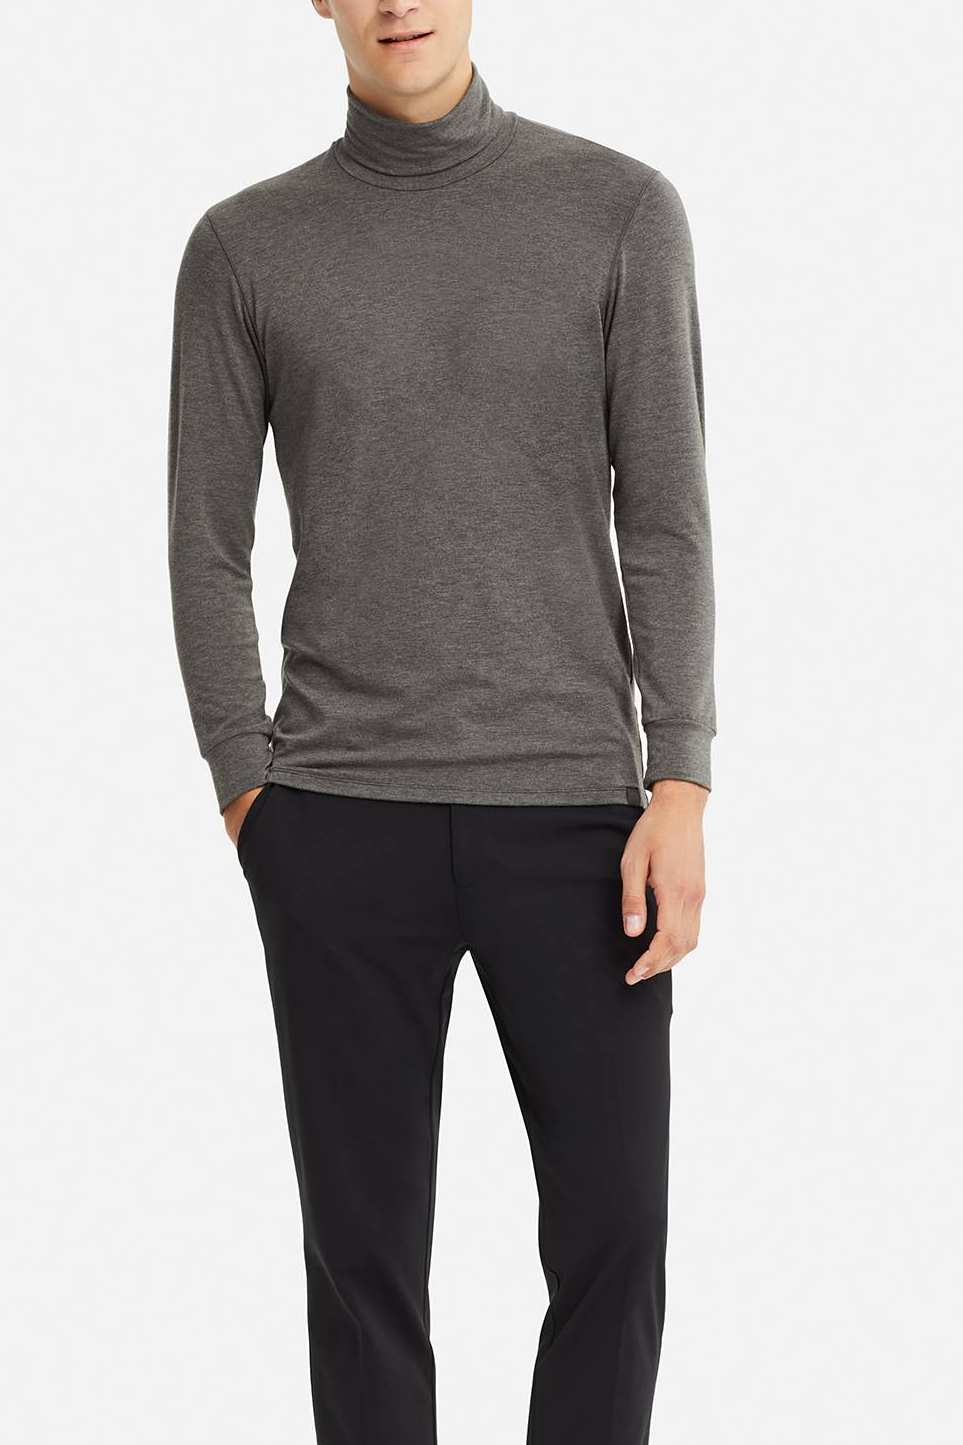 Uniqlo Men's Heattech Extra Warm Turtleneck Long-Sleeve T-shirt